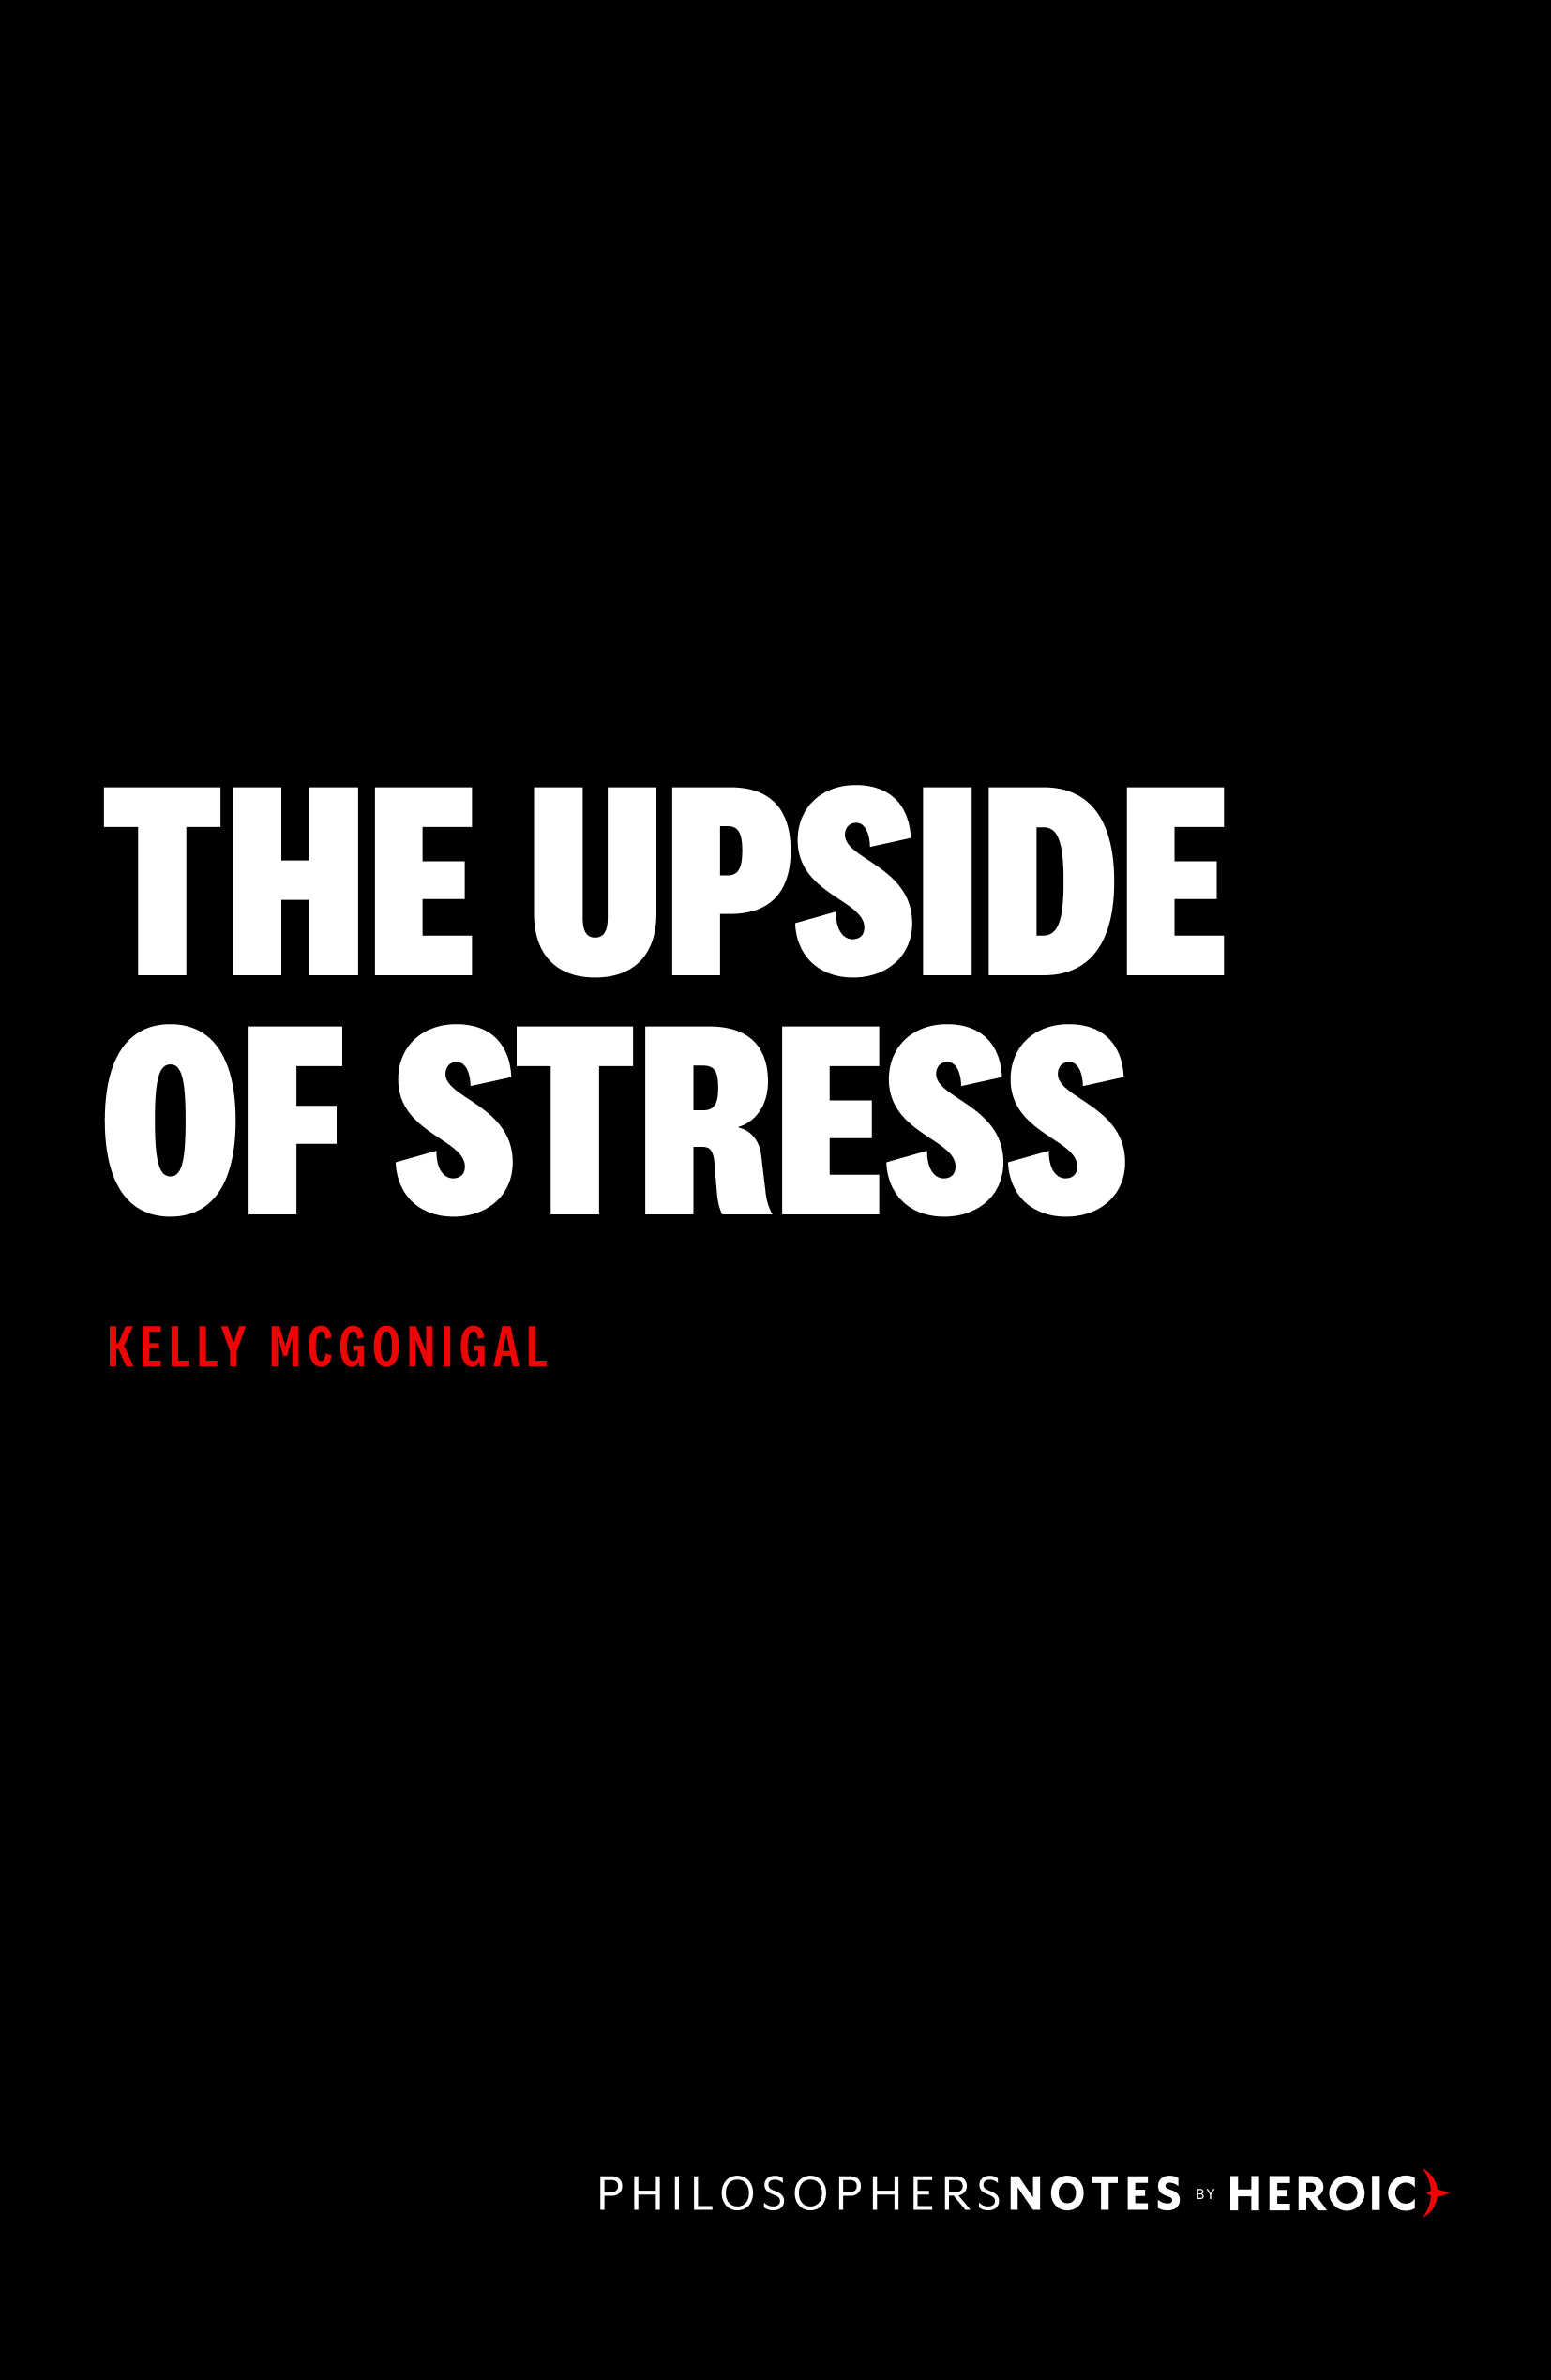 The Upside of Stress by Kelly McGonigal - PhilosophersNotes ...